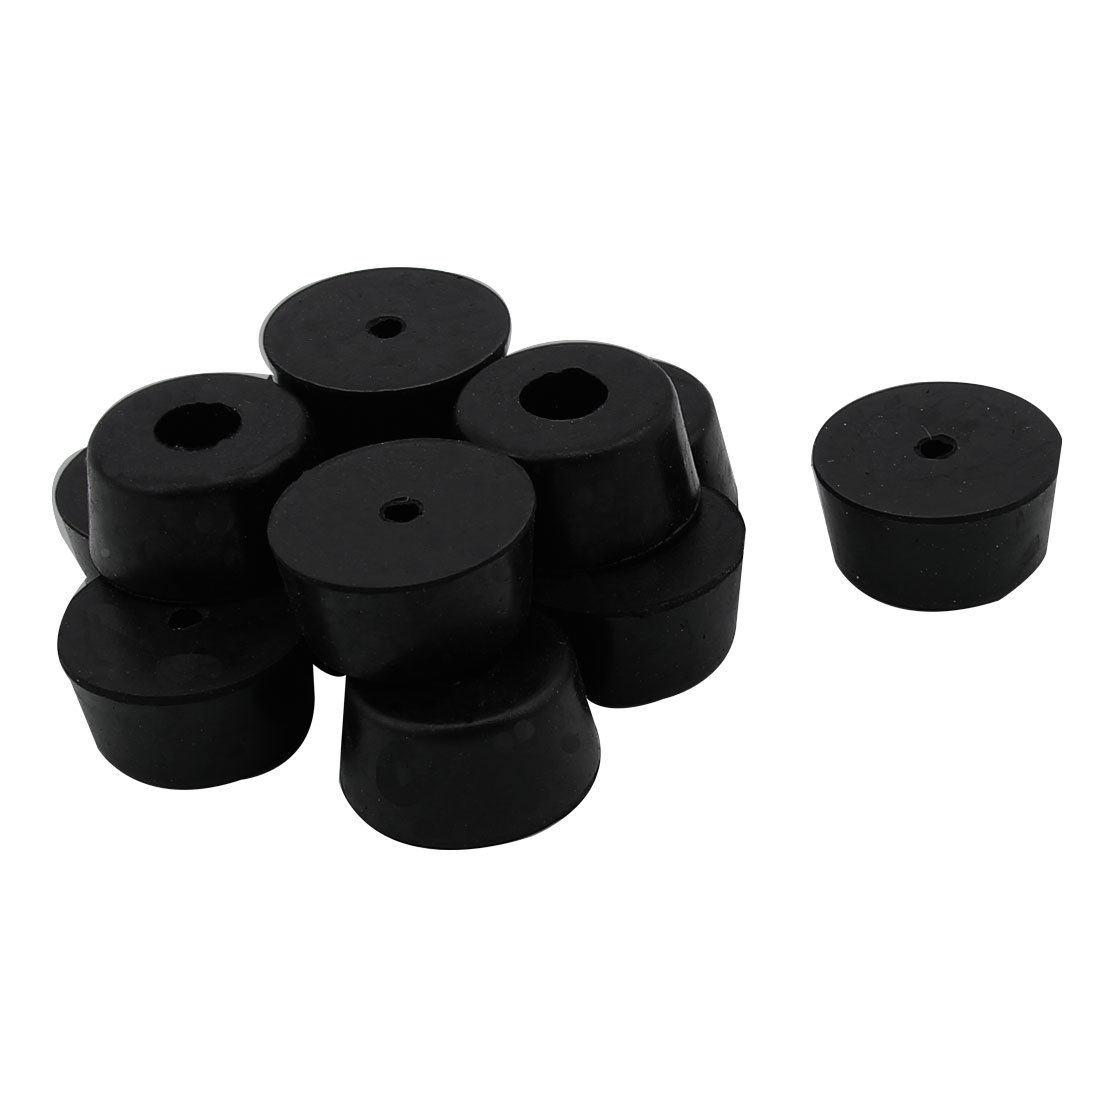 25mm x 22mm x 13mm Cabinet Speaker Furniture Chair Rubber Feet Pad Black 12PCS